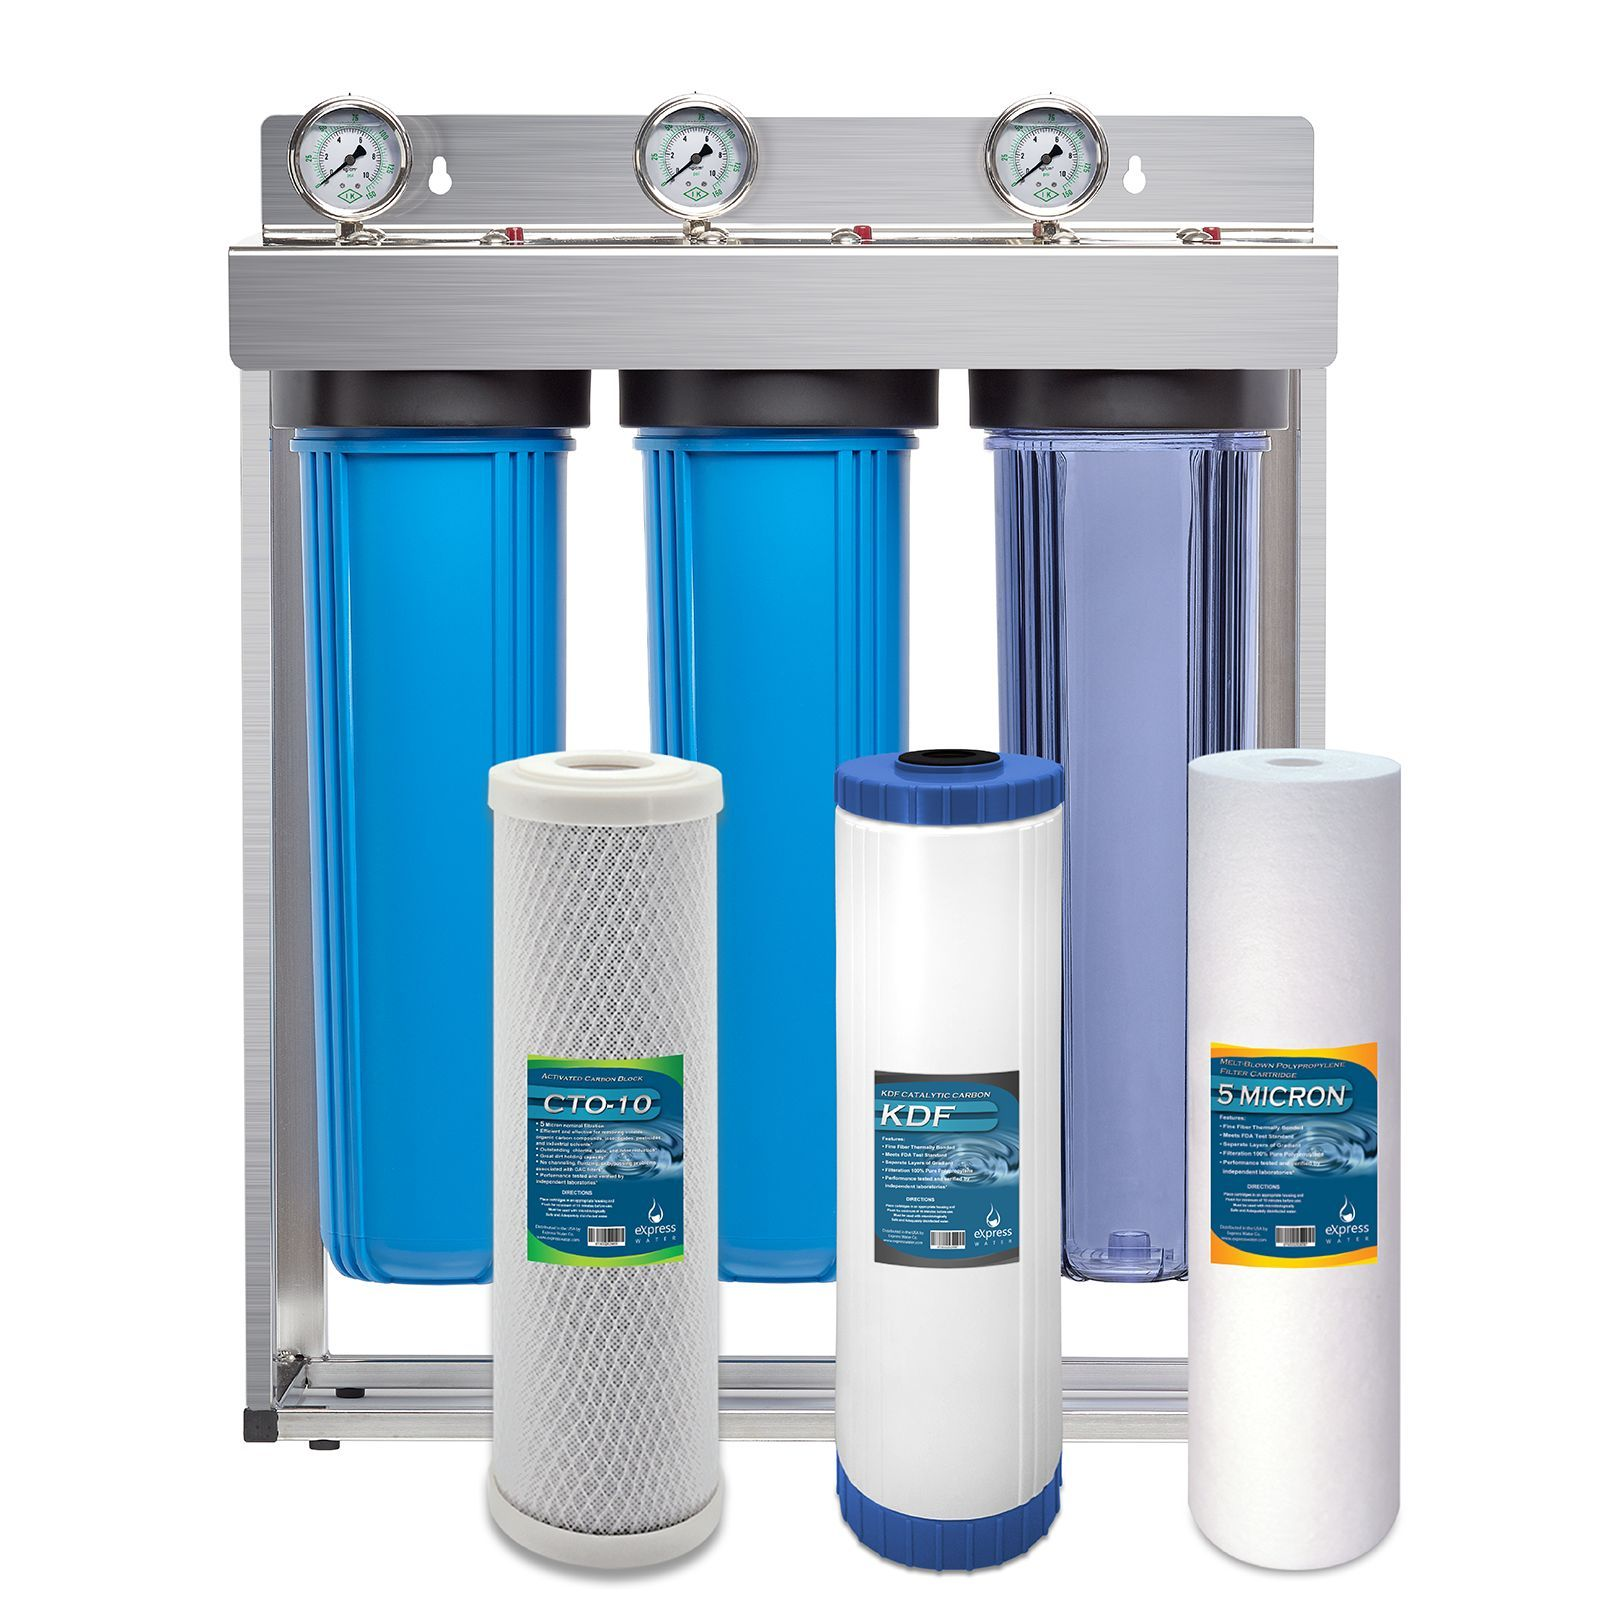 Heavy Metal Whole House Water Filter 3 Stage Home Water Filtration System Sediment Kdf Carbon Filters Home Water Filtration Water Filter Whole House Water Filter